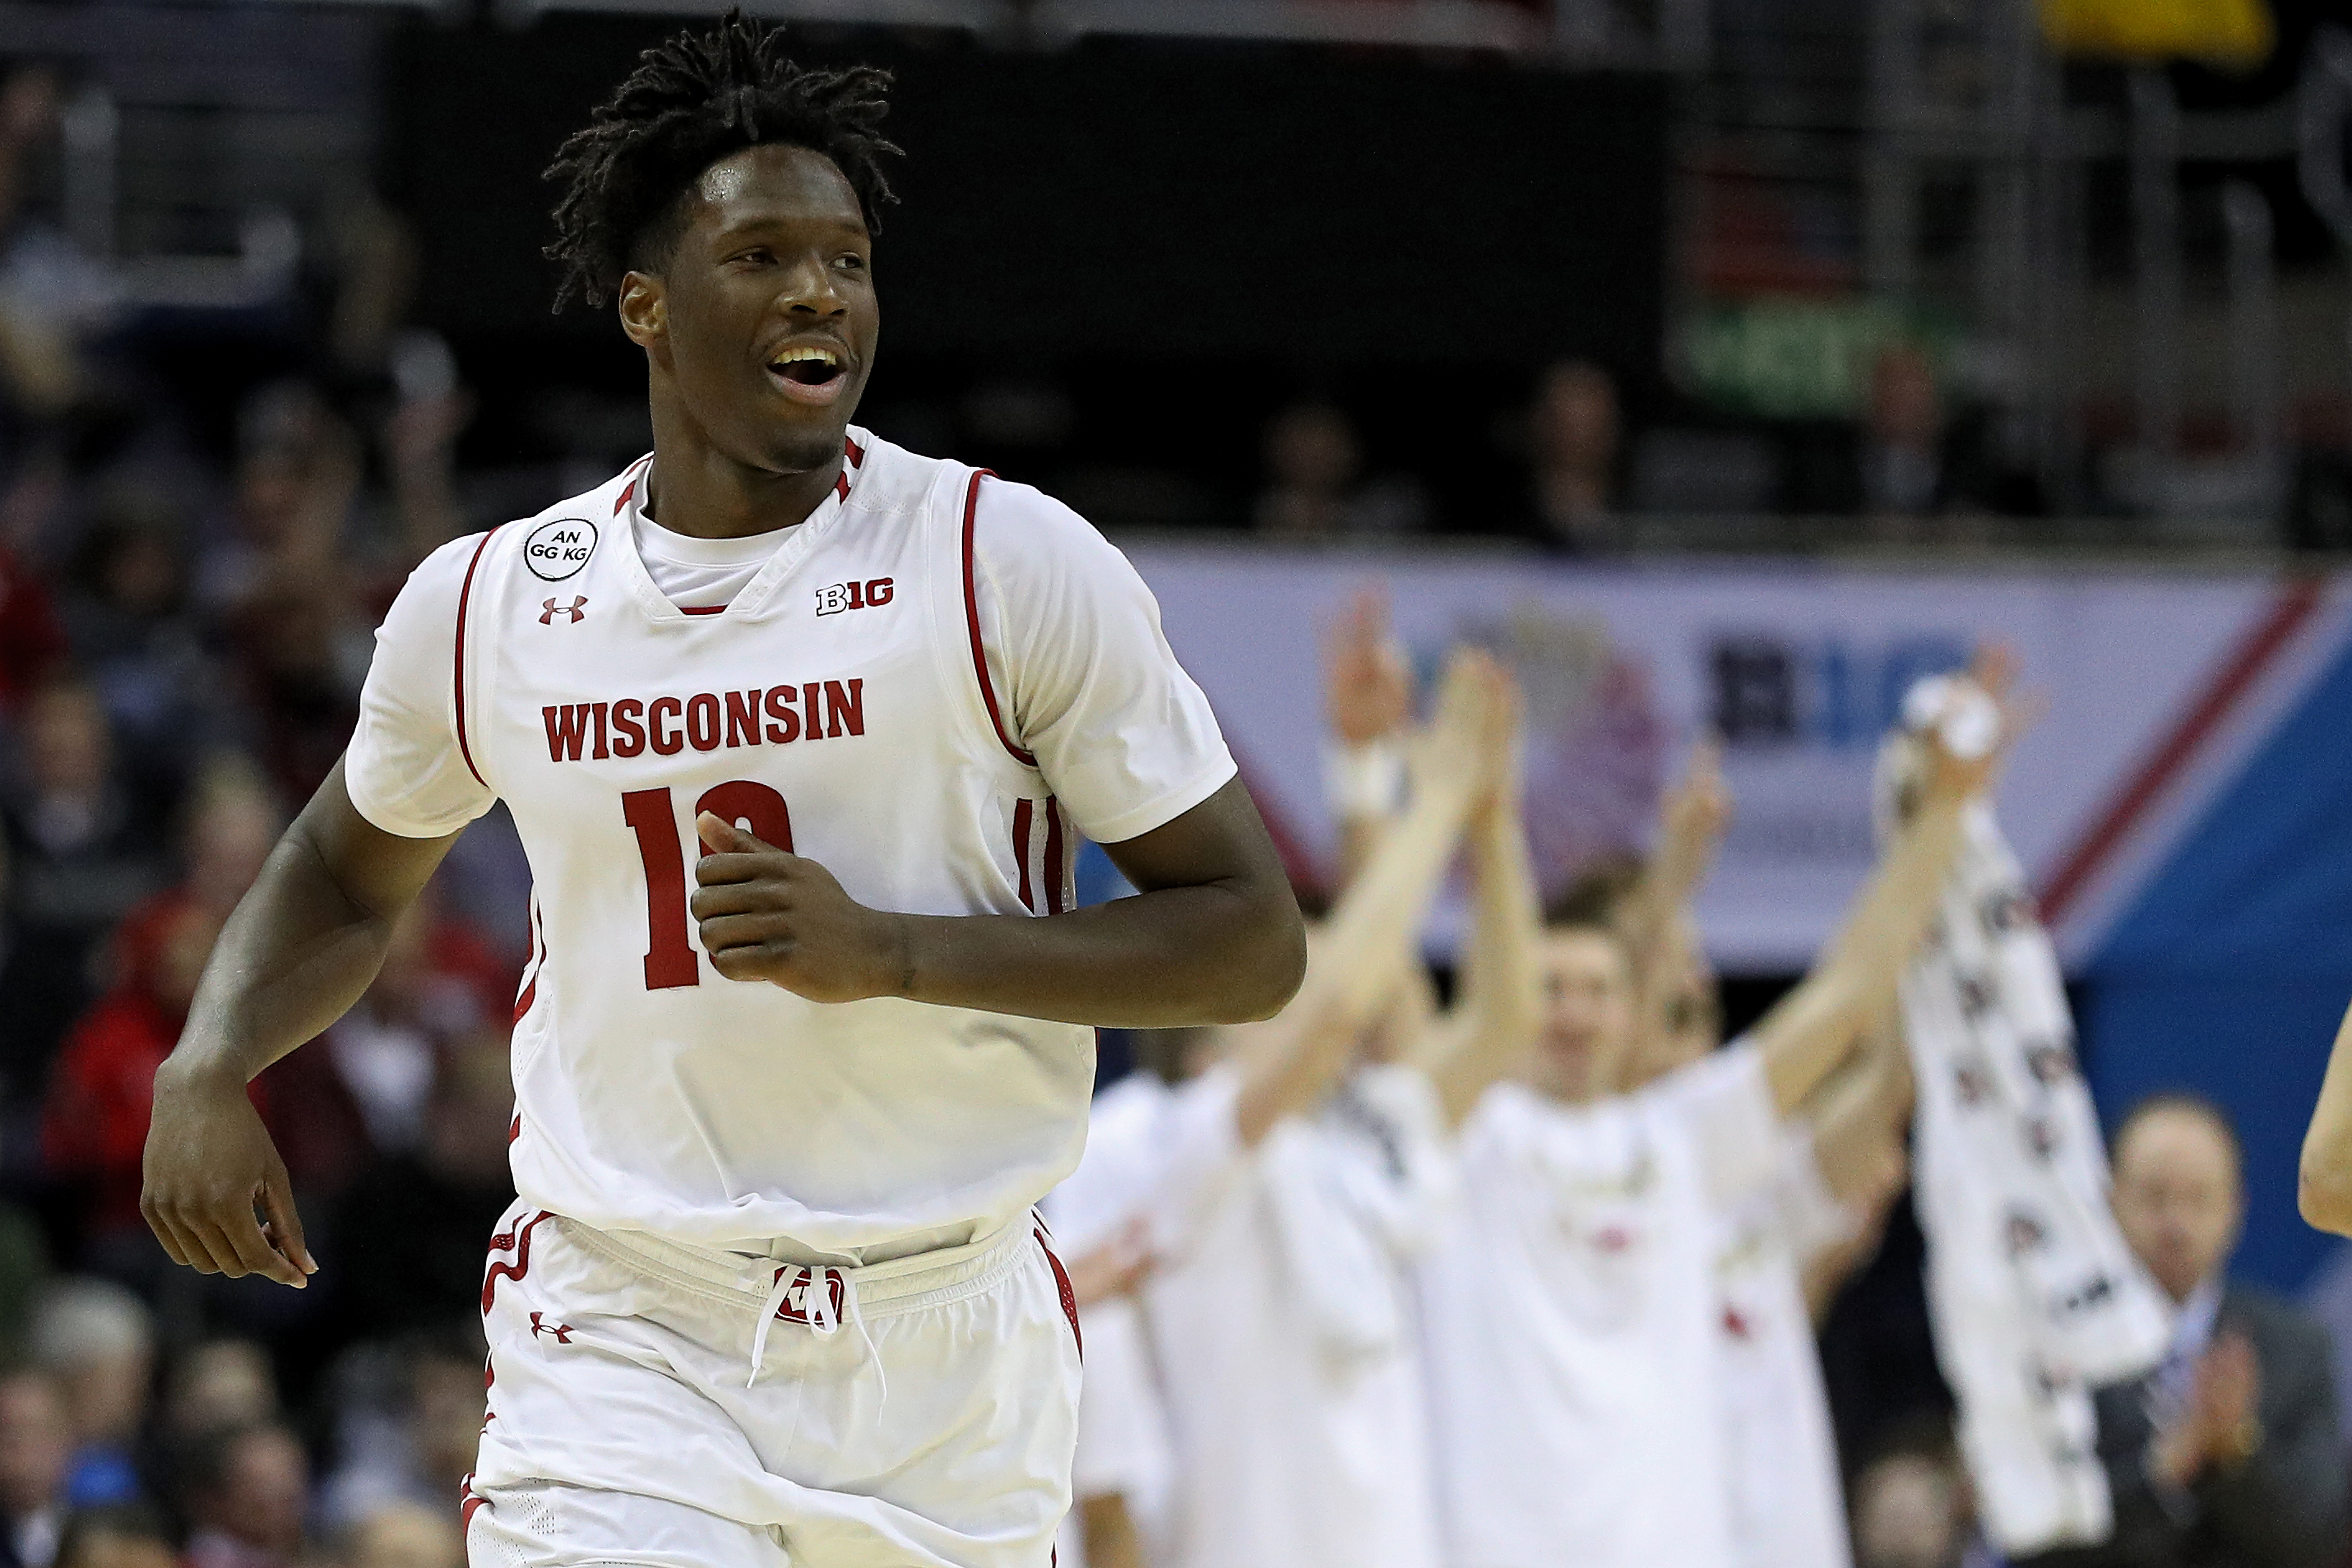 Wisconsin star Nigel Hayes  will lead the Badgers to Buffalo to face Virginia Tech on Thursday in the NCAA Tournament. (Getty Images)